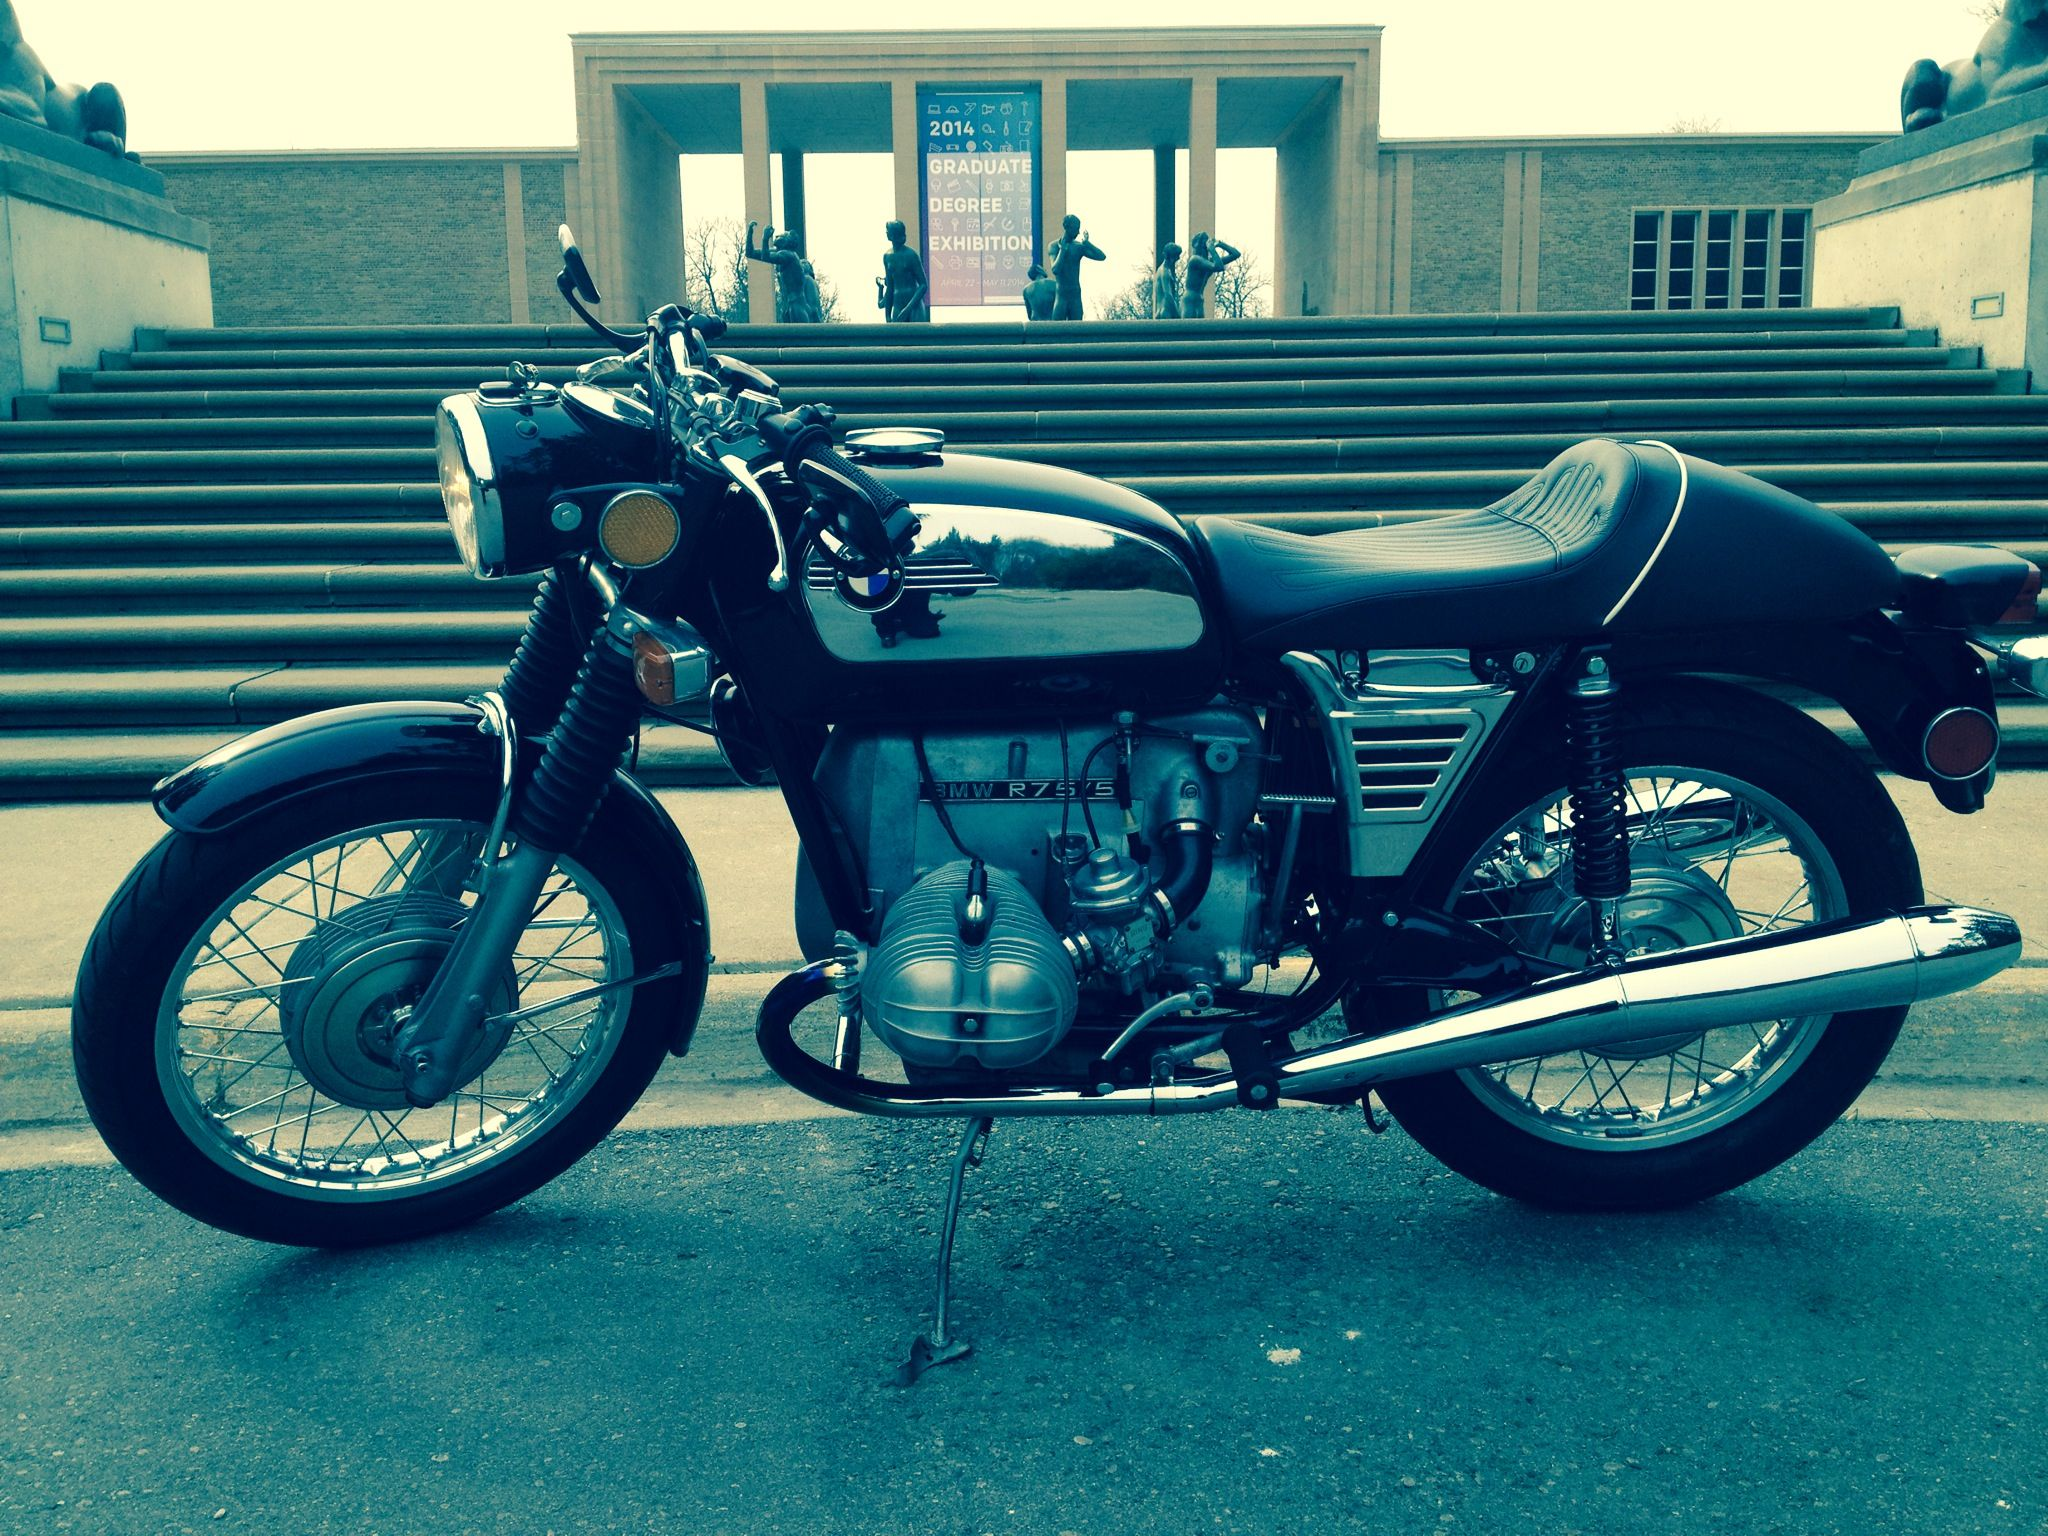 73 BMW R75/5 Toaster. Great classic bike. I restored this, got a stupid offer on it and sold it without thinking, I have regretted it every day since.